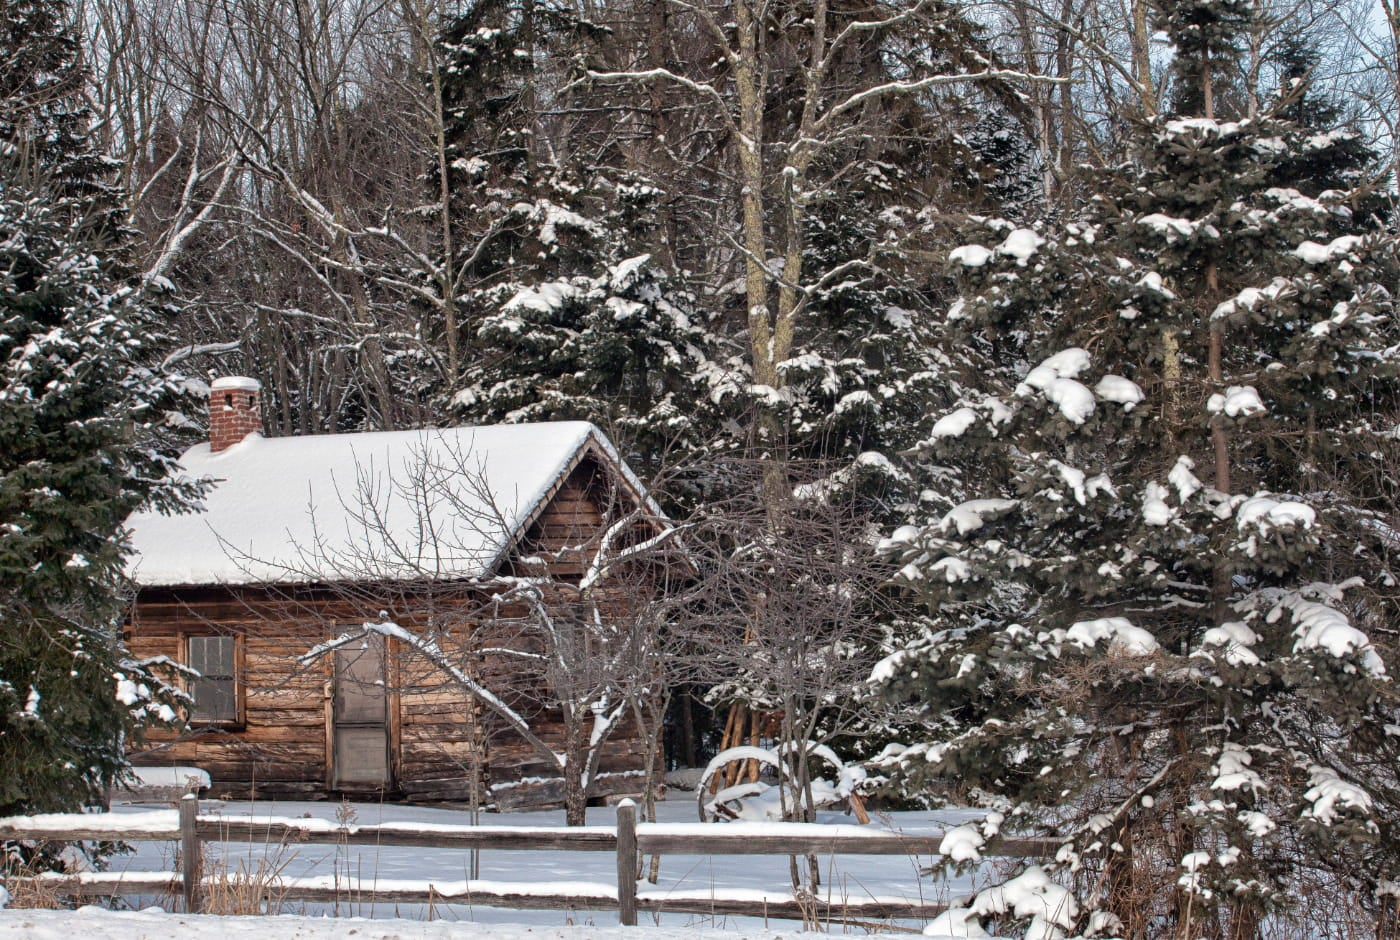 A snow covered log cabin with a brick chimney is nestled behind a wooden fence in a cluster of evergreens and deciduos trees.